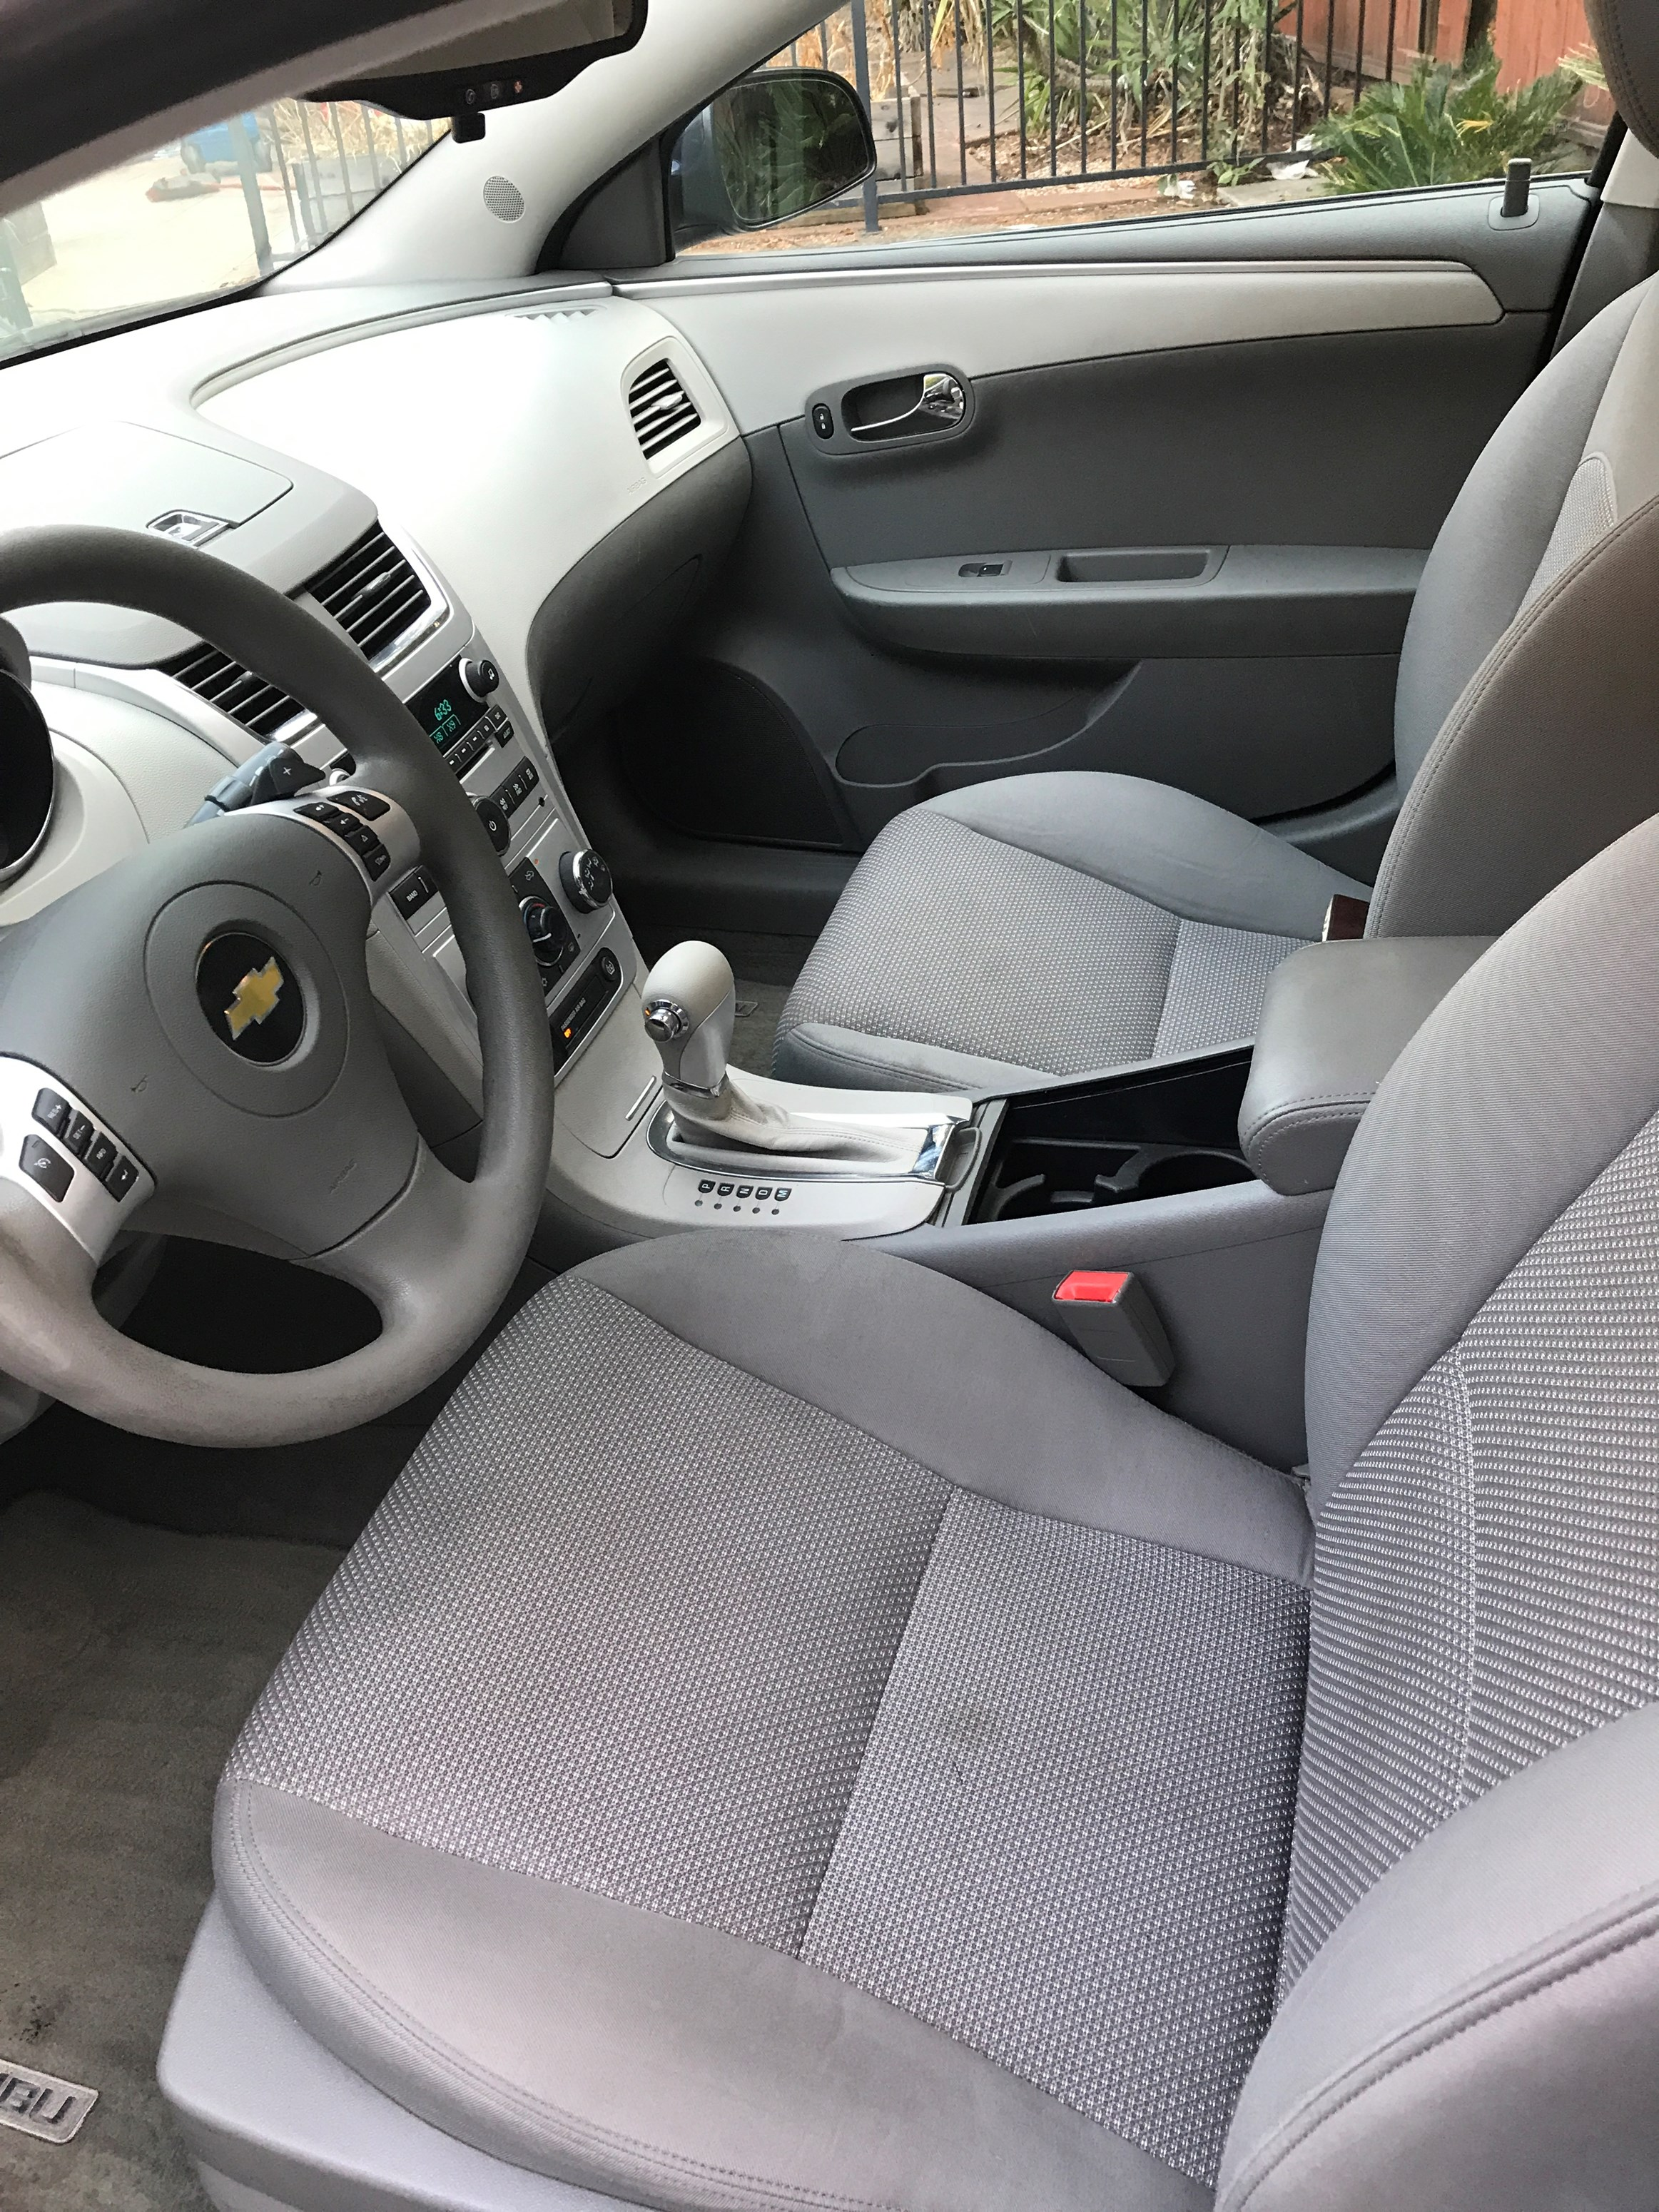 2010 Chevy Malibu LT1, Well Maintained, Clean Title, Moonroof/ Used ...